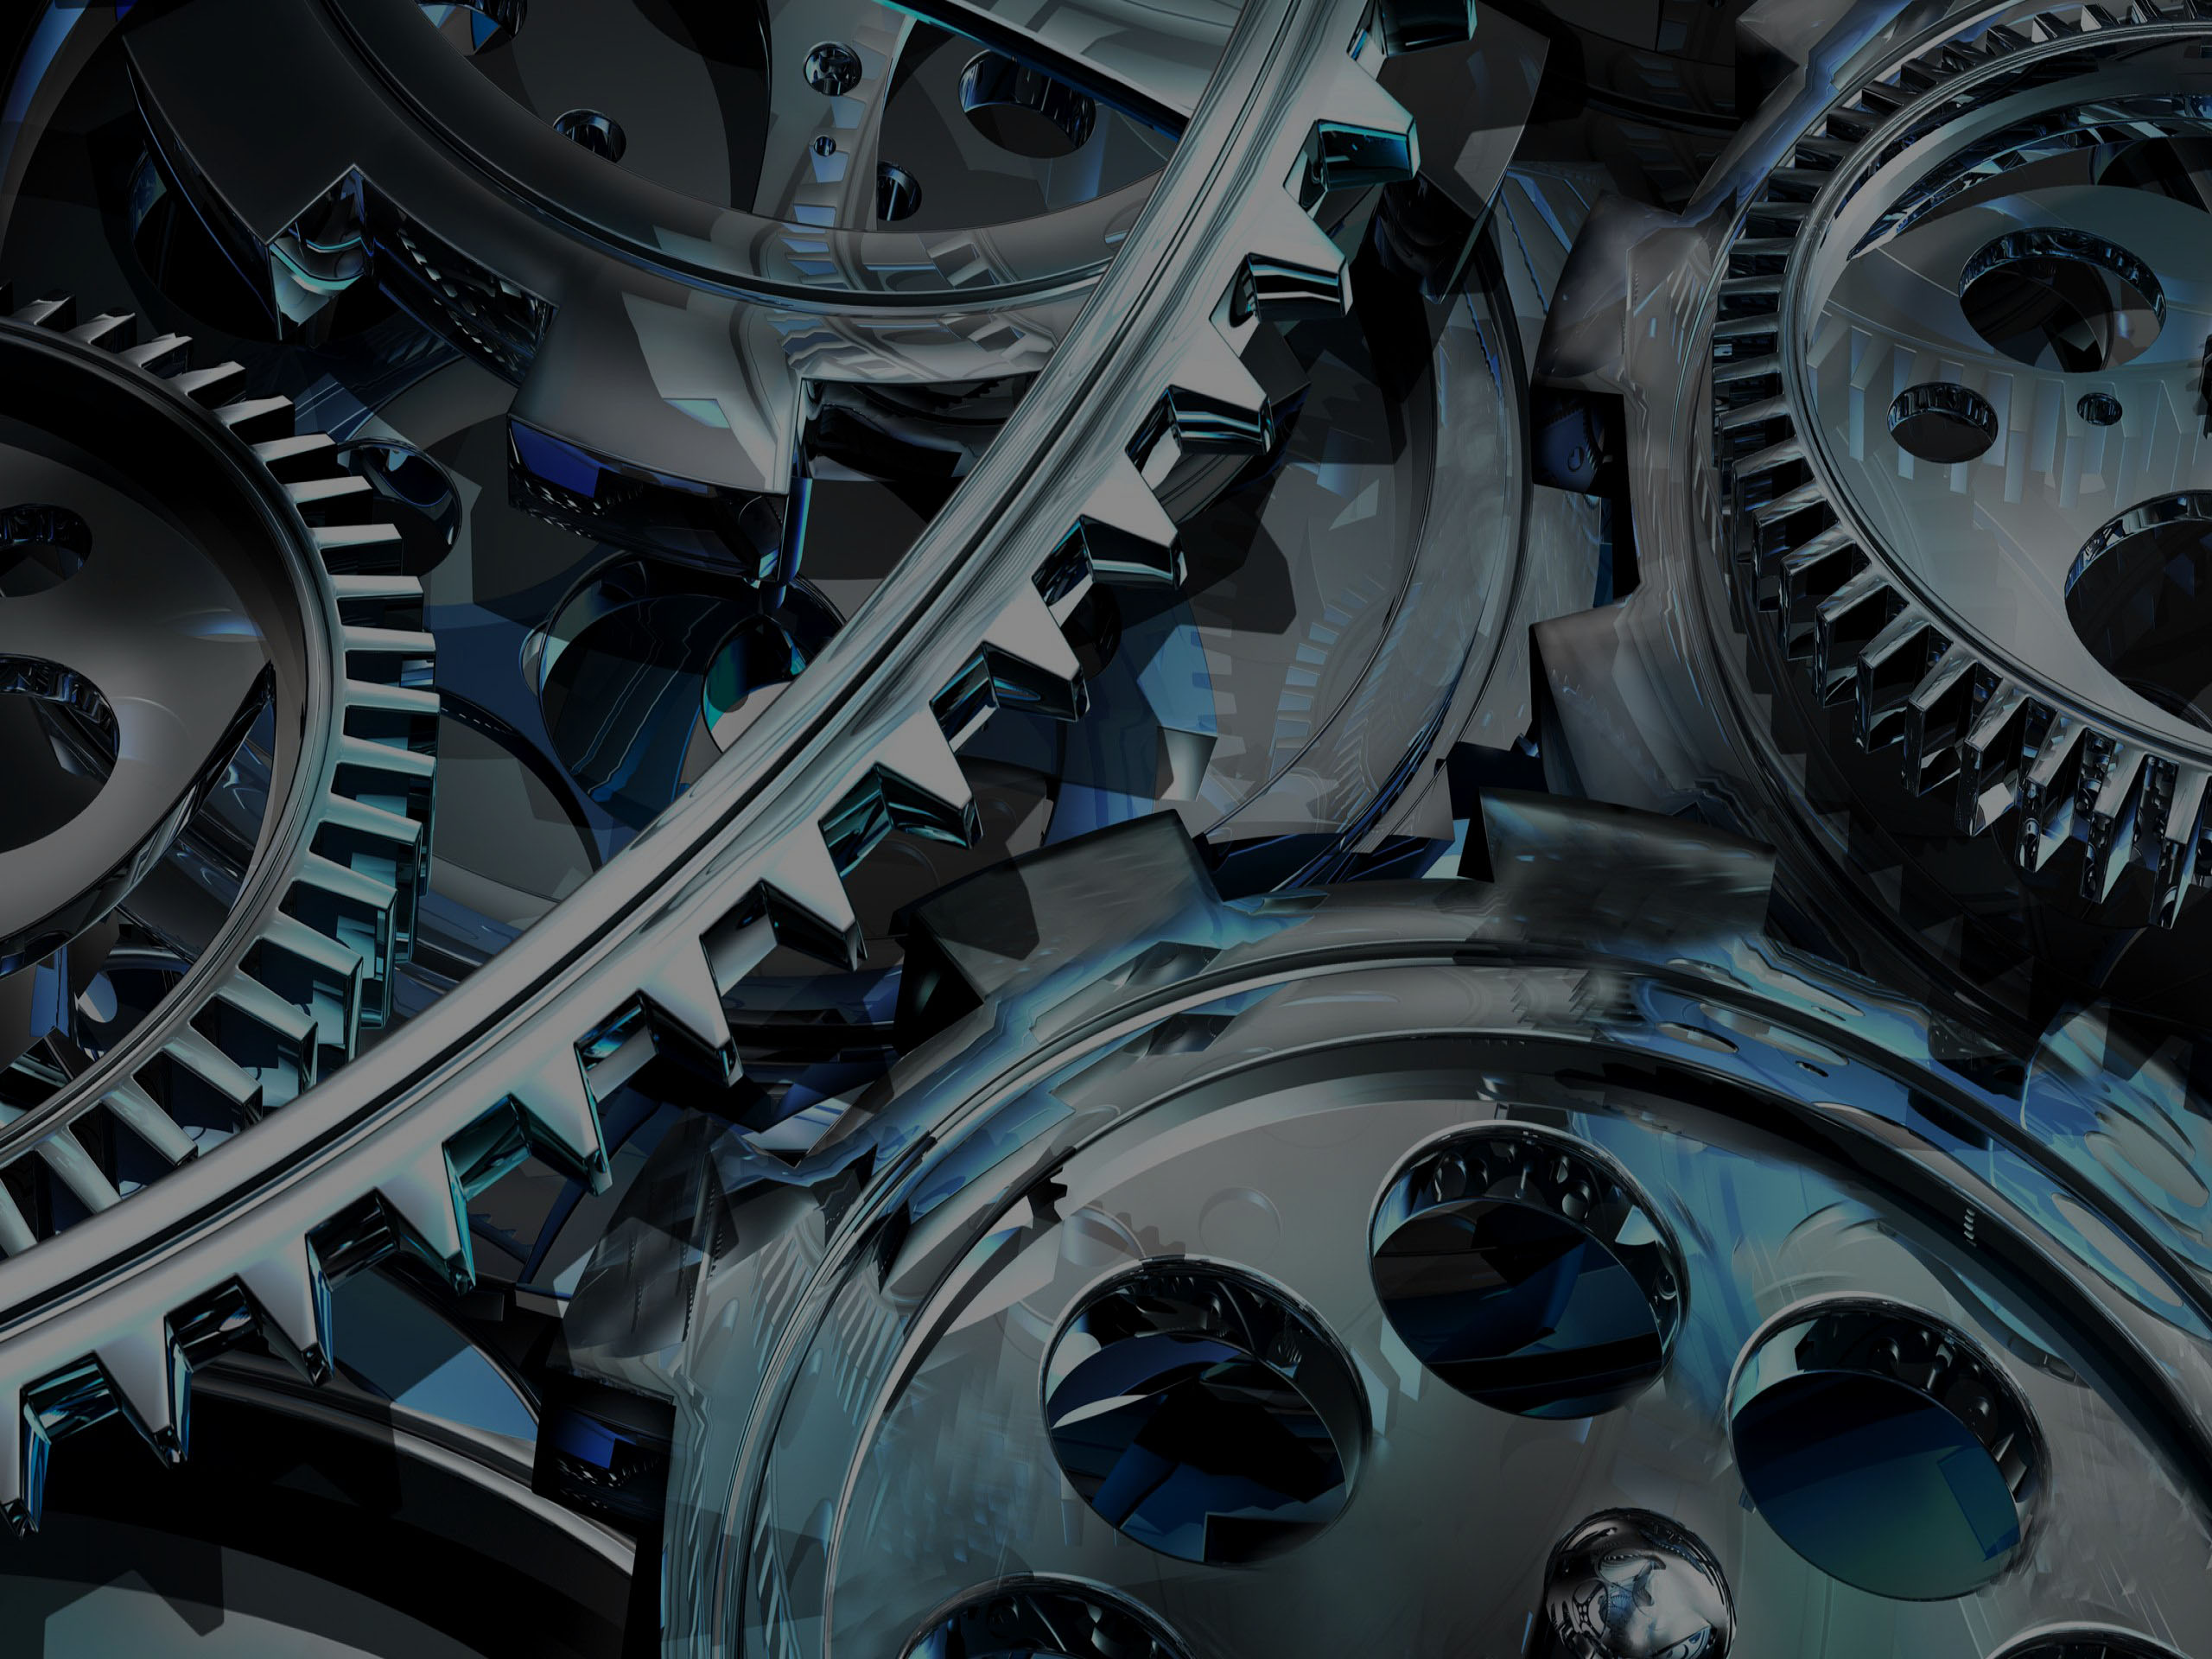 Wallpapers mechanical engineering design free large for Mechanical product design companies